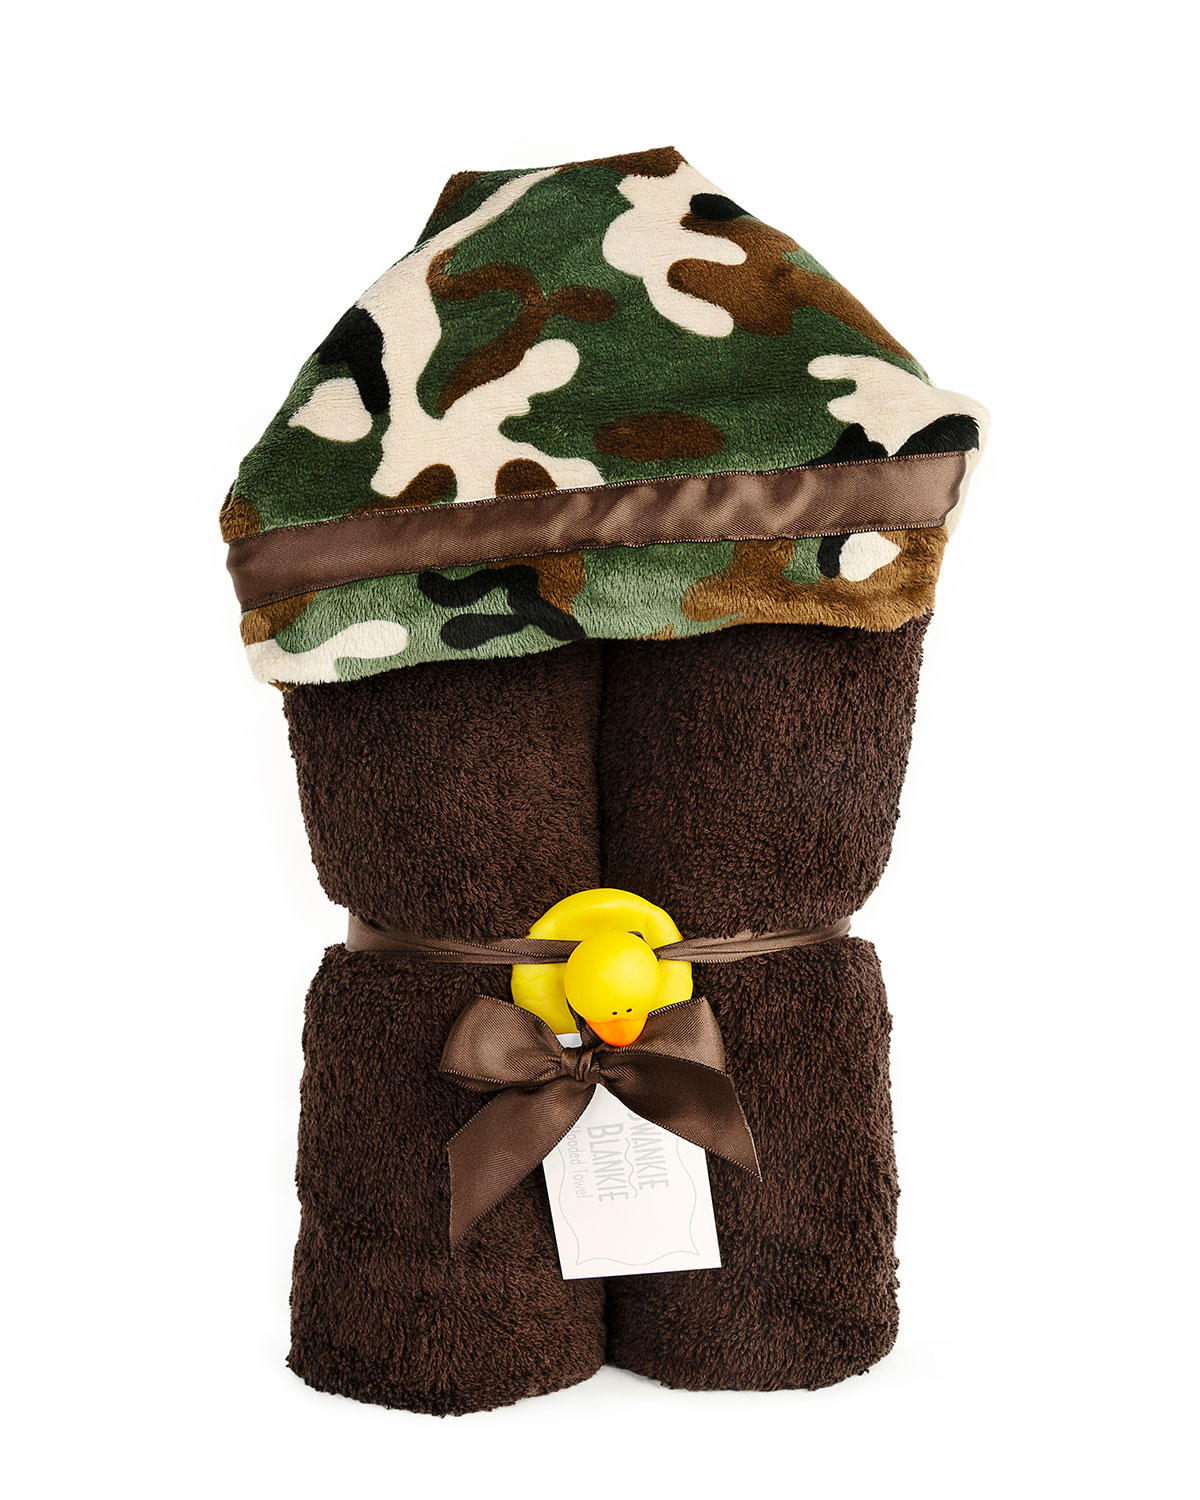 Camouflage Hooded Towel, Brown